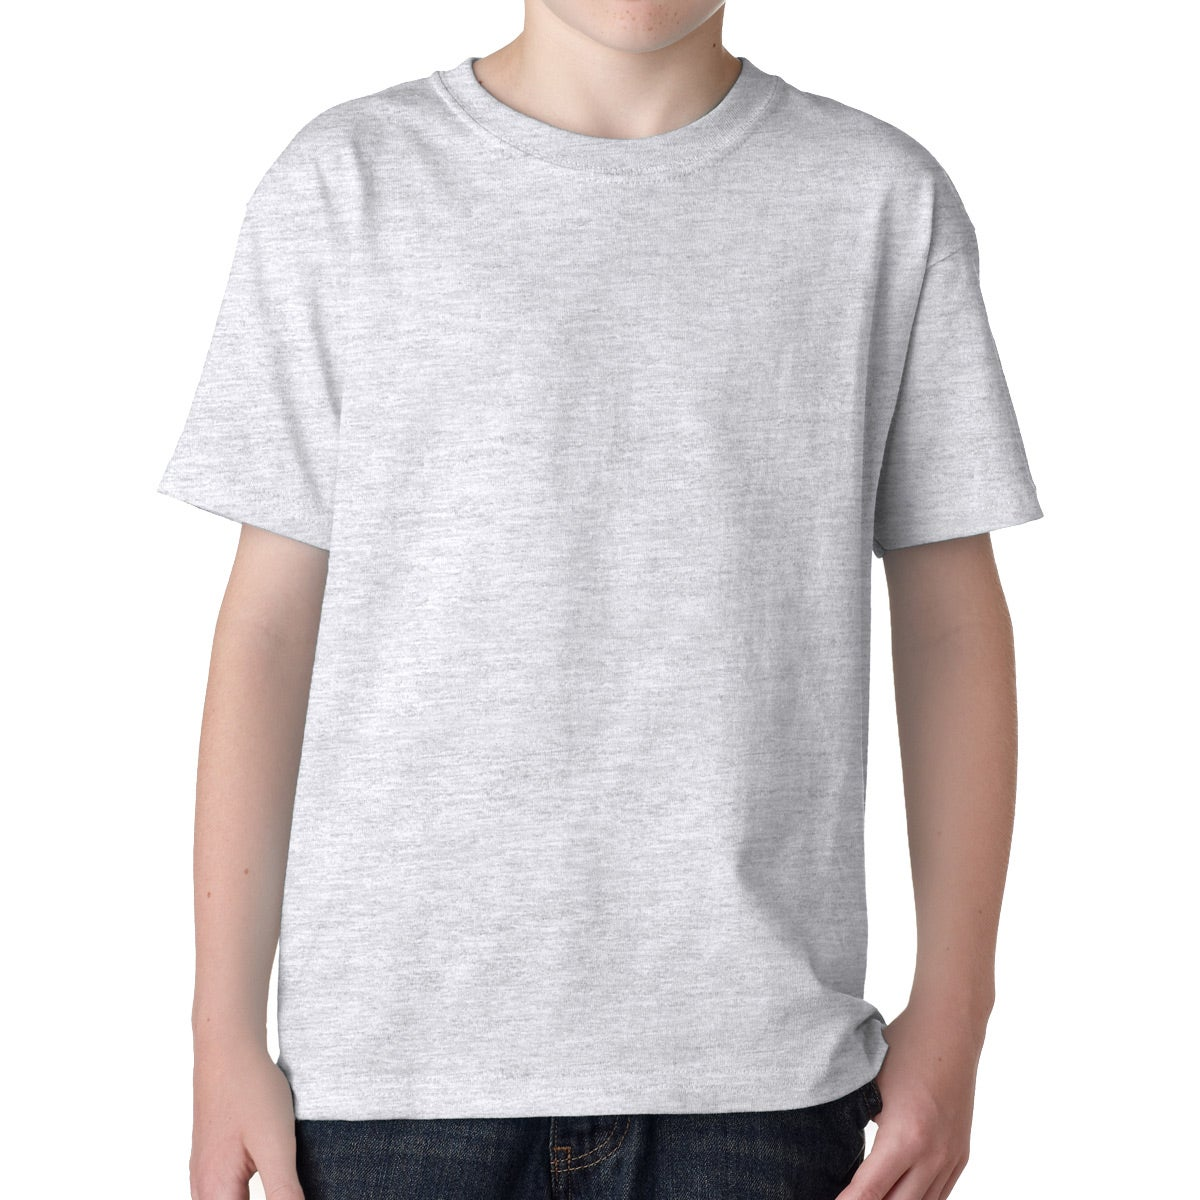 Gildan youth heavy cotton t shirt colors 100 cotton t for Gildan t shirts online